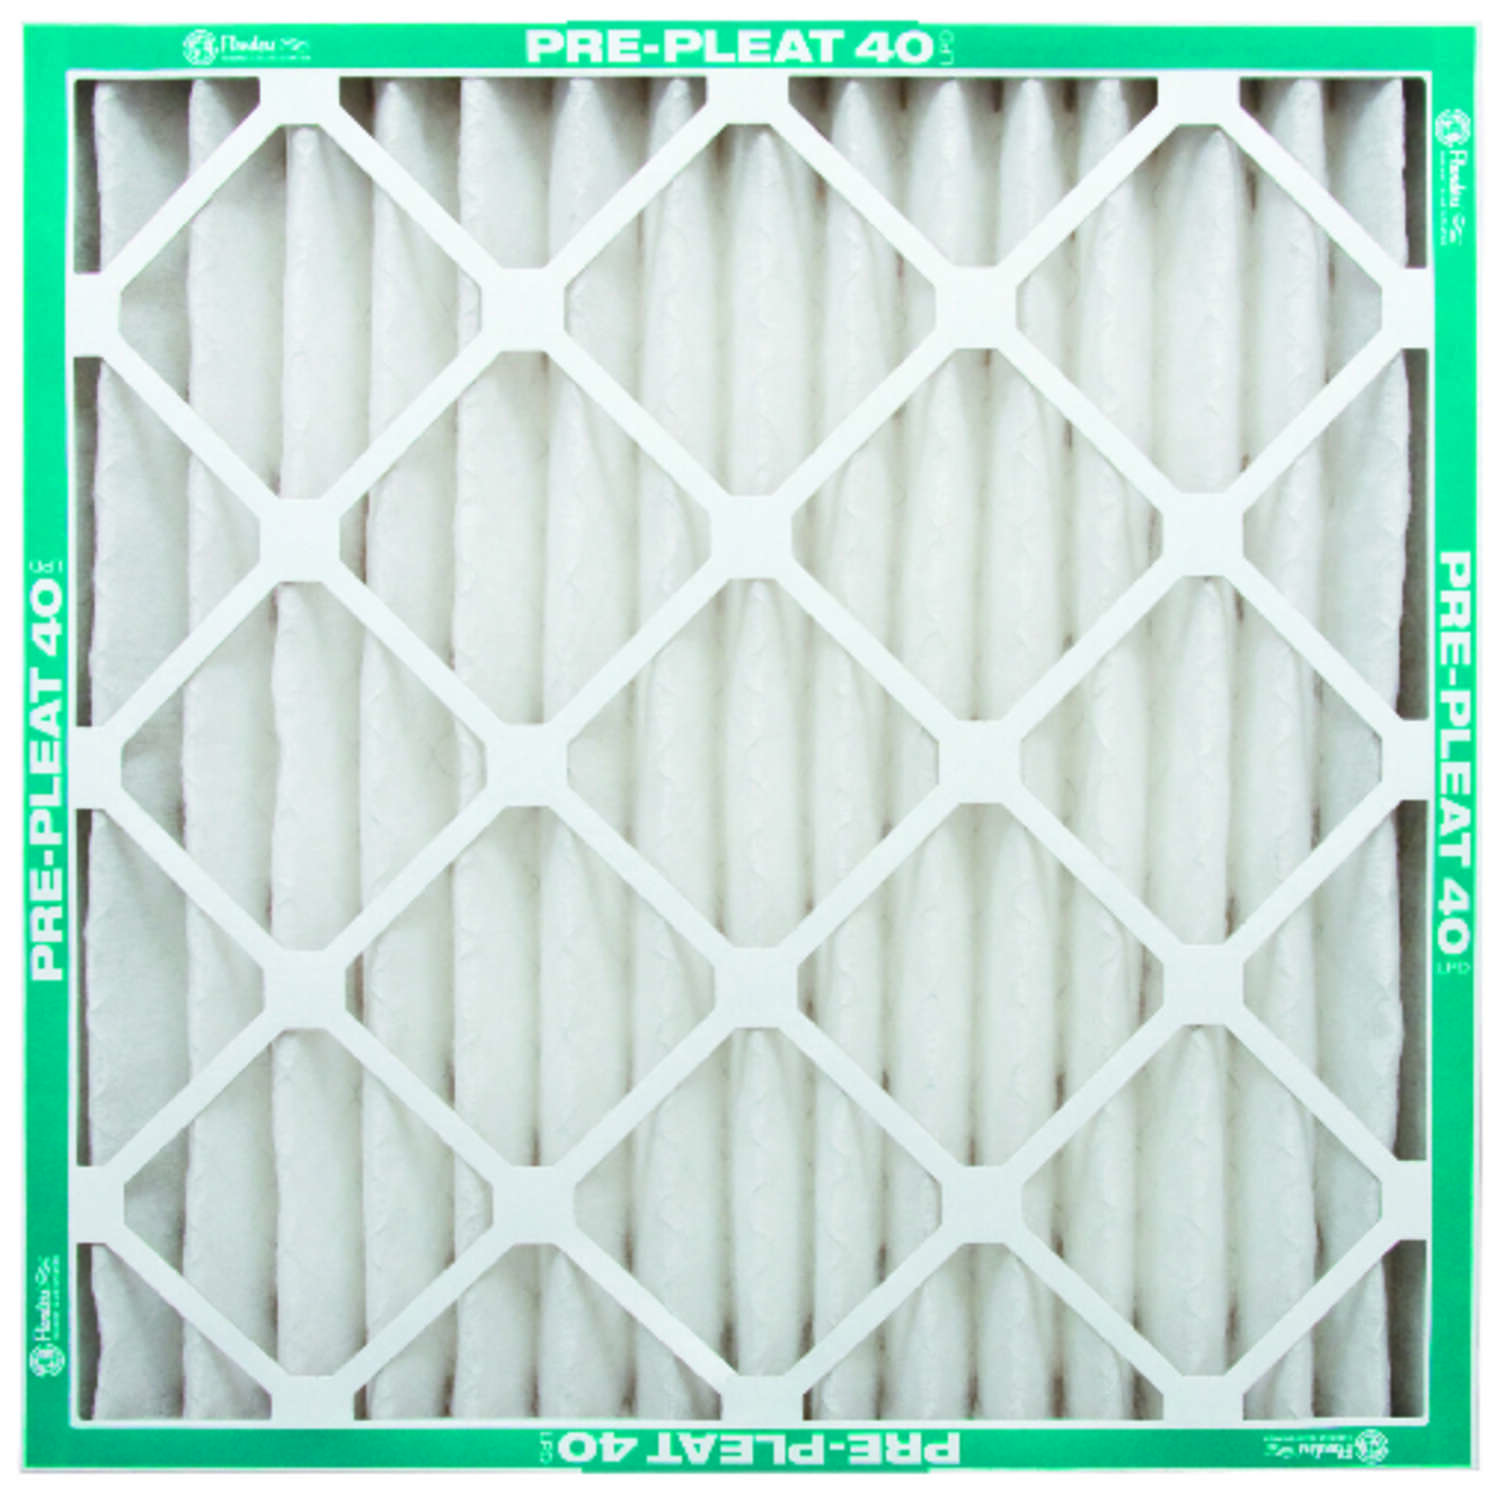 Flanders  PREpleat  20 in. W x 30 in. H x 2 in. D Synthetic  8 MERV Pleated Air Filter